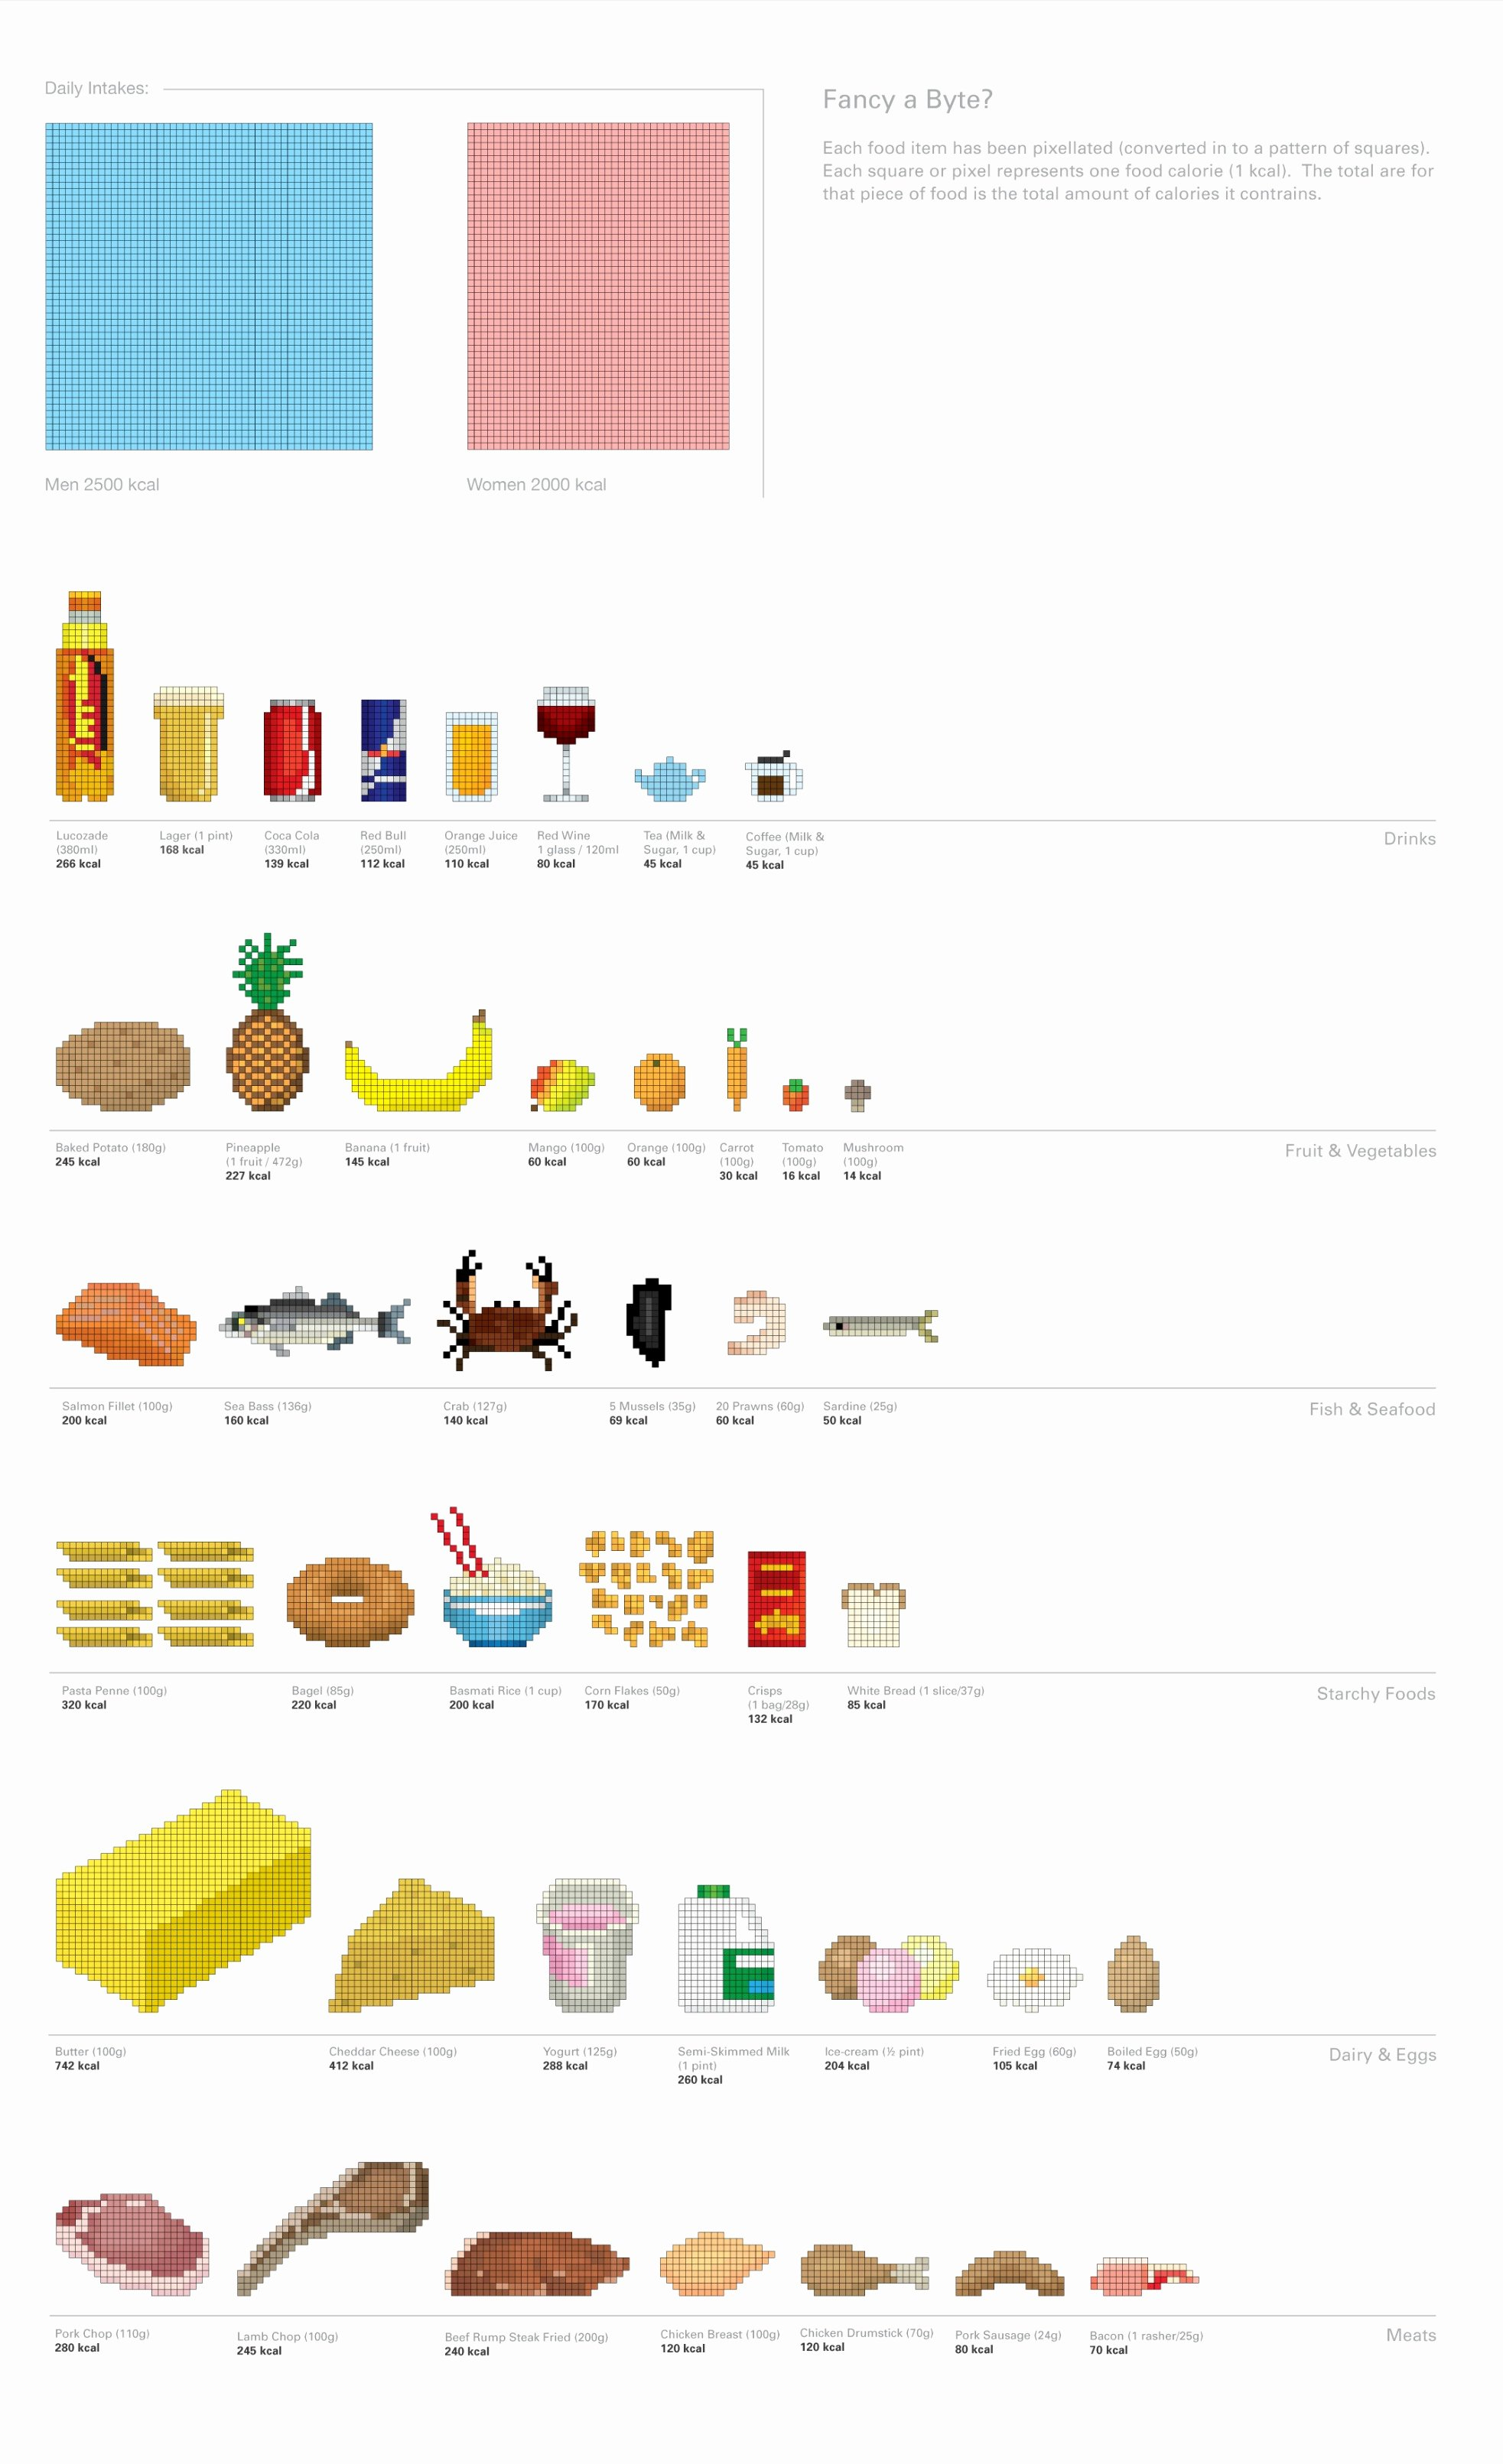 Calories In All Foods Chart Awesome 42 Mon Food & Drink Calories Visualized as